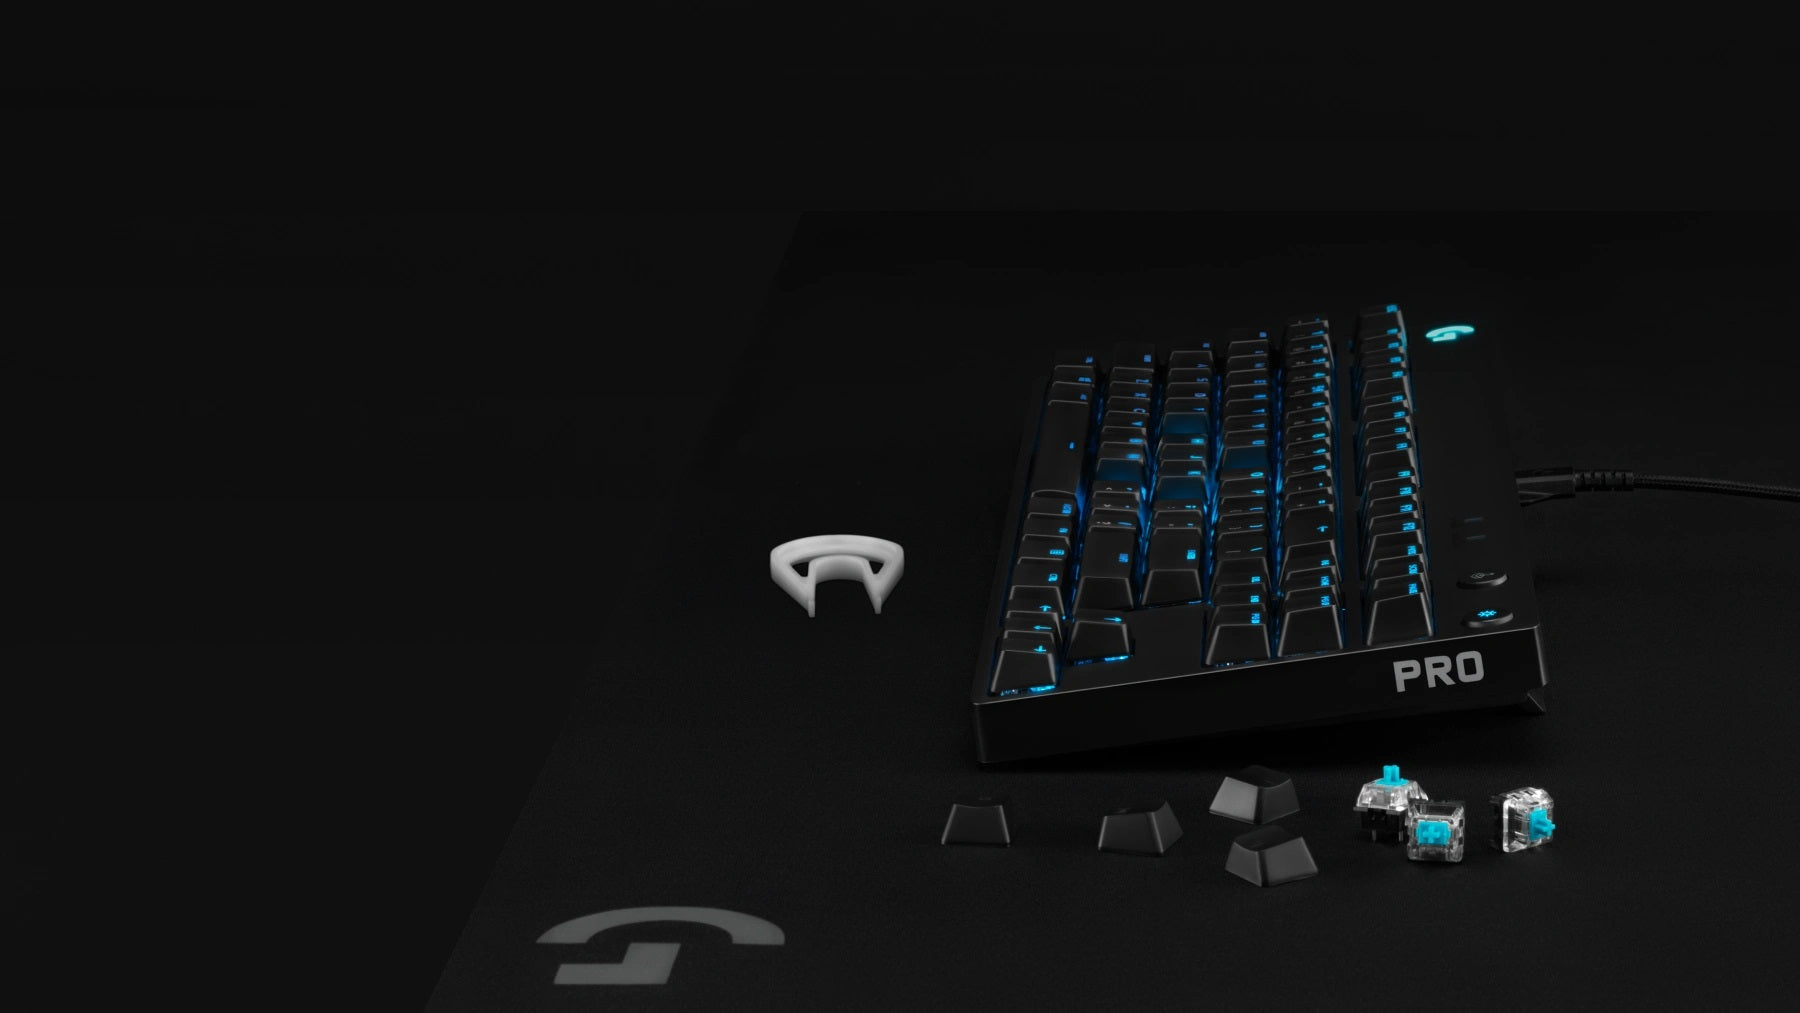 USER-SWAPPABLE PRO-GRADE SWITCHES - Advanced GX mechanical switches—engineered and 100% tested for performance, responsiveness, and durability. Customize the feel of your PRO X keyboard with three removable switch variants.  Choose from GX Blue Clicky, GX Red Linear or GX Brown Tactile.